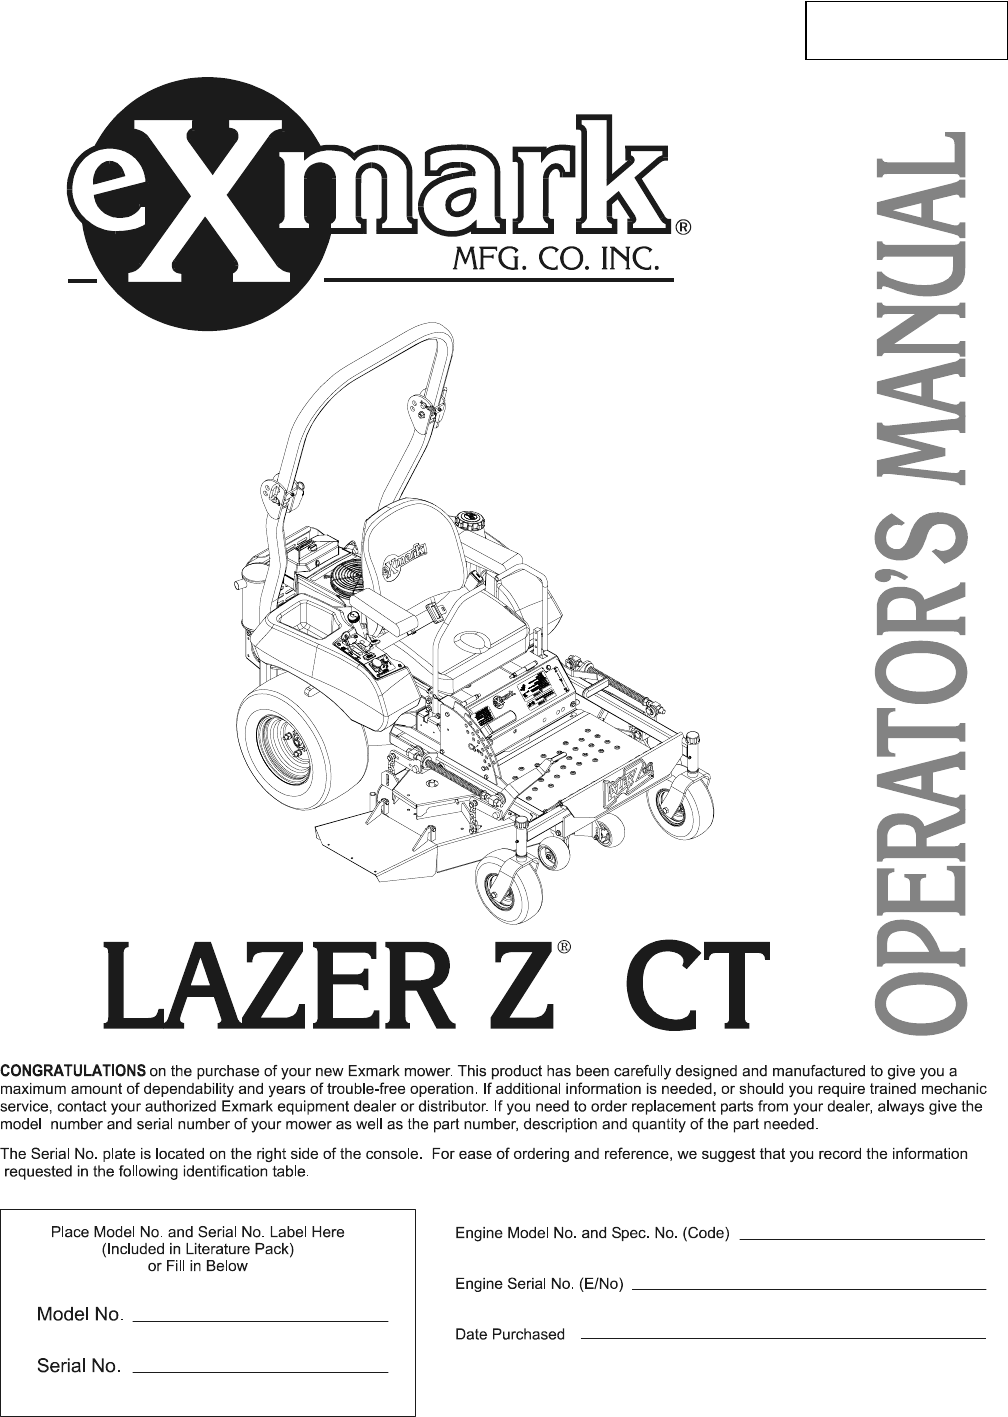 2a16a19e 46fd 4b7f bad9 75dfc22e1169 bg1 exmark lawn mower lazer z ct user guide manualsonline com exmark lazer z wiring schematic at readyjetset.co